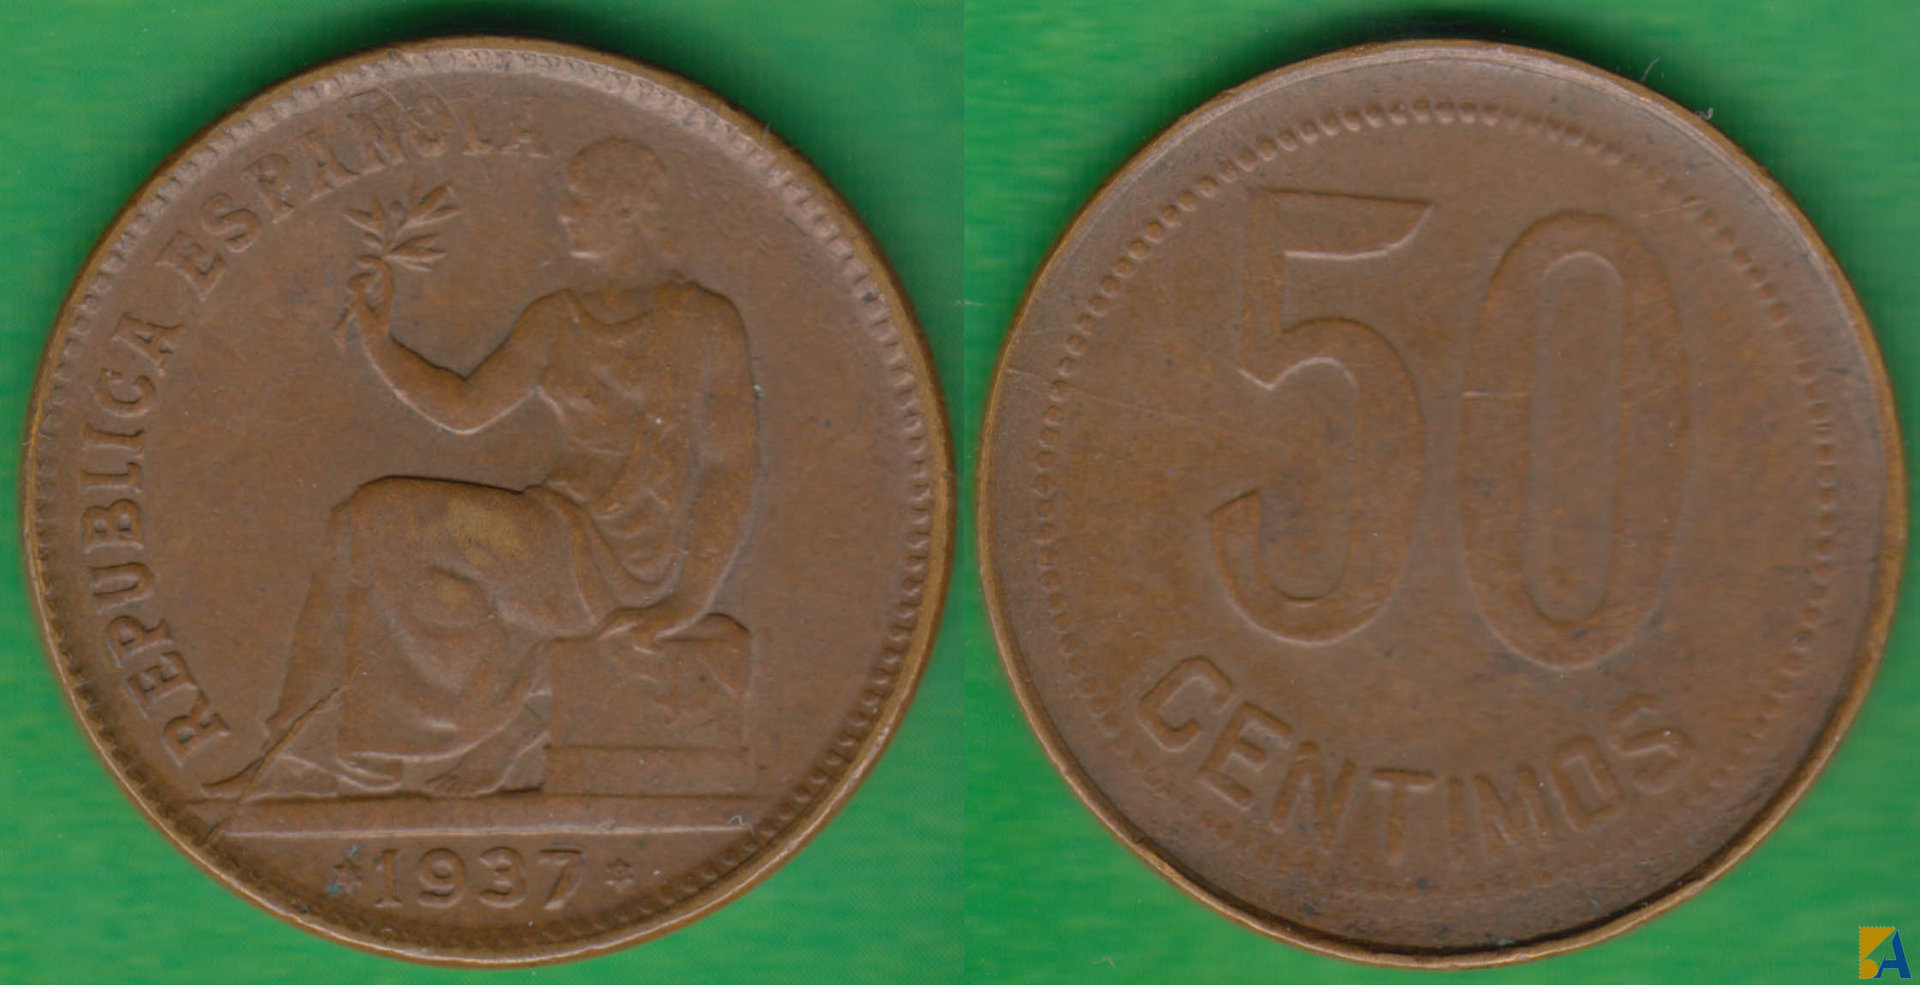 II REPUBLICA. 50 CENTIMOS DE 1937 (*3-*4). (2)